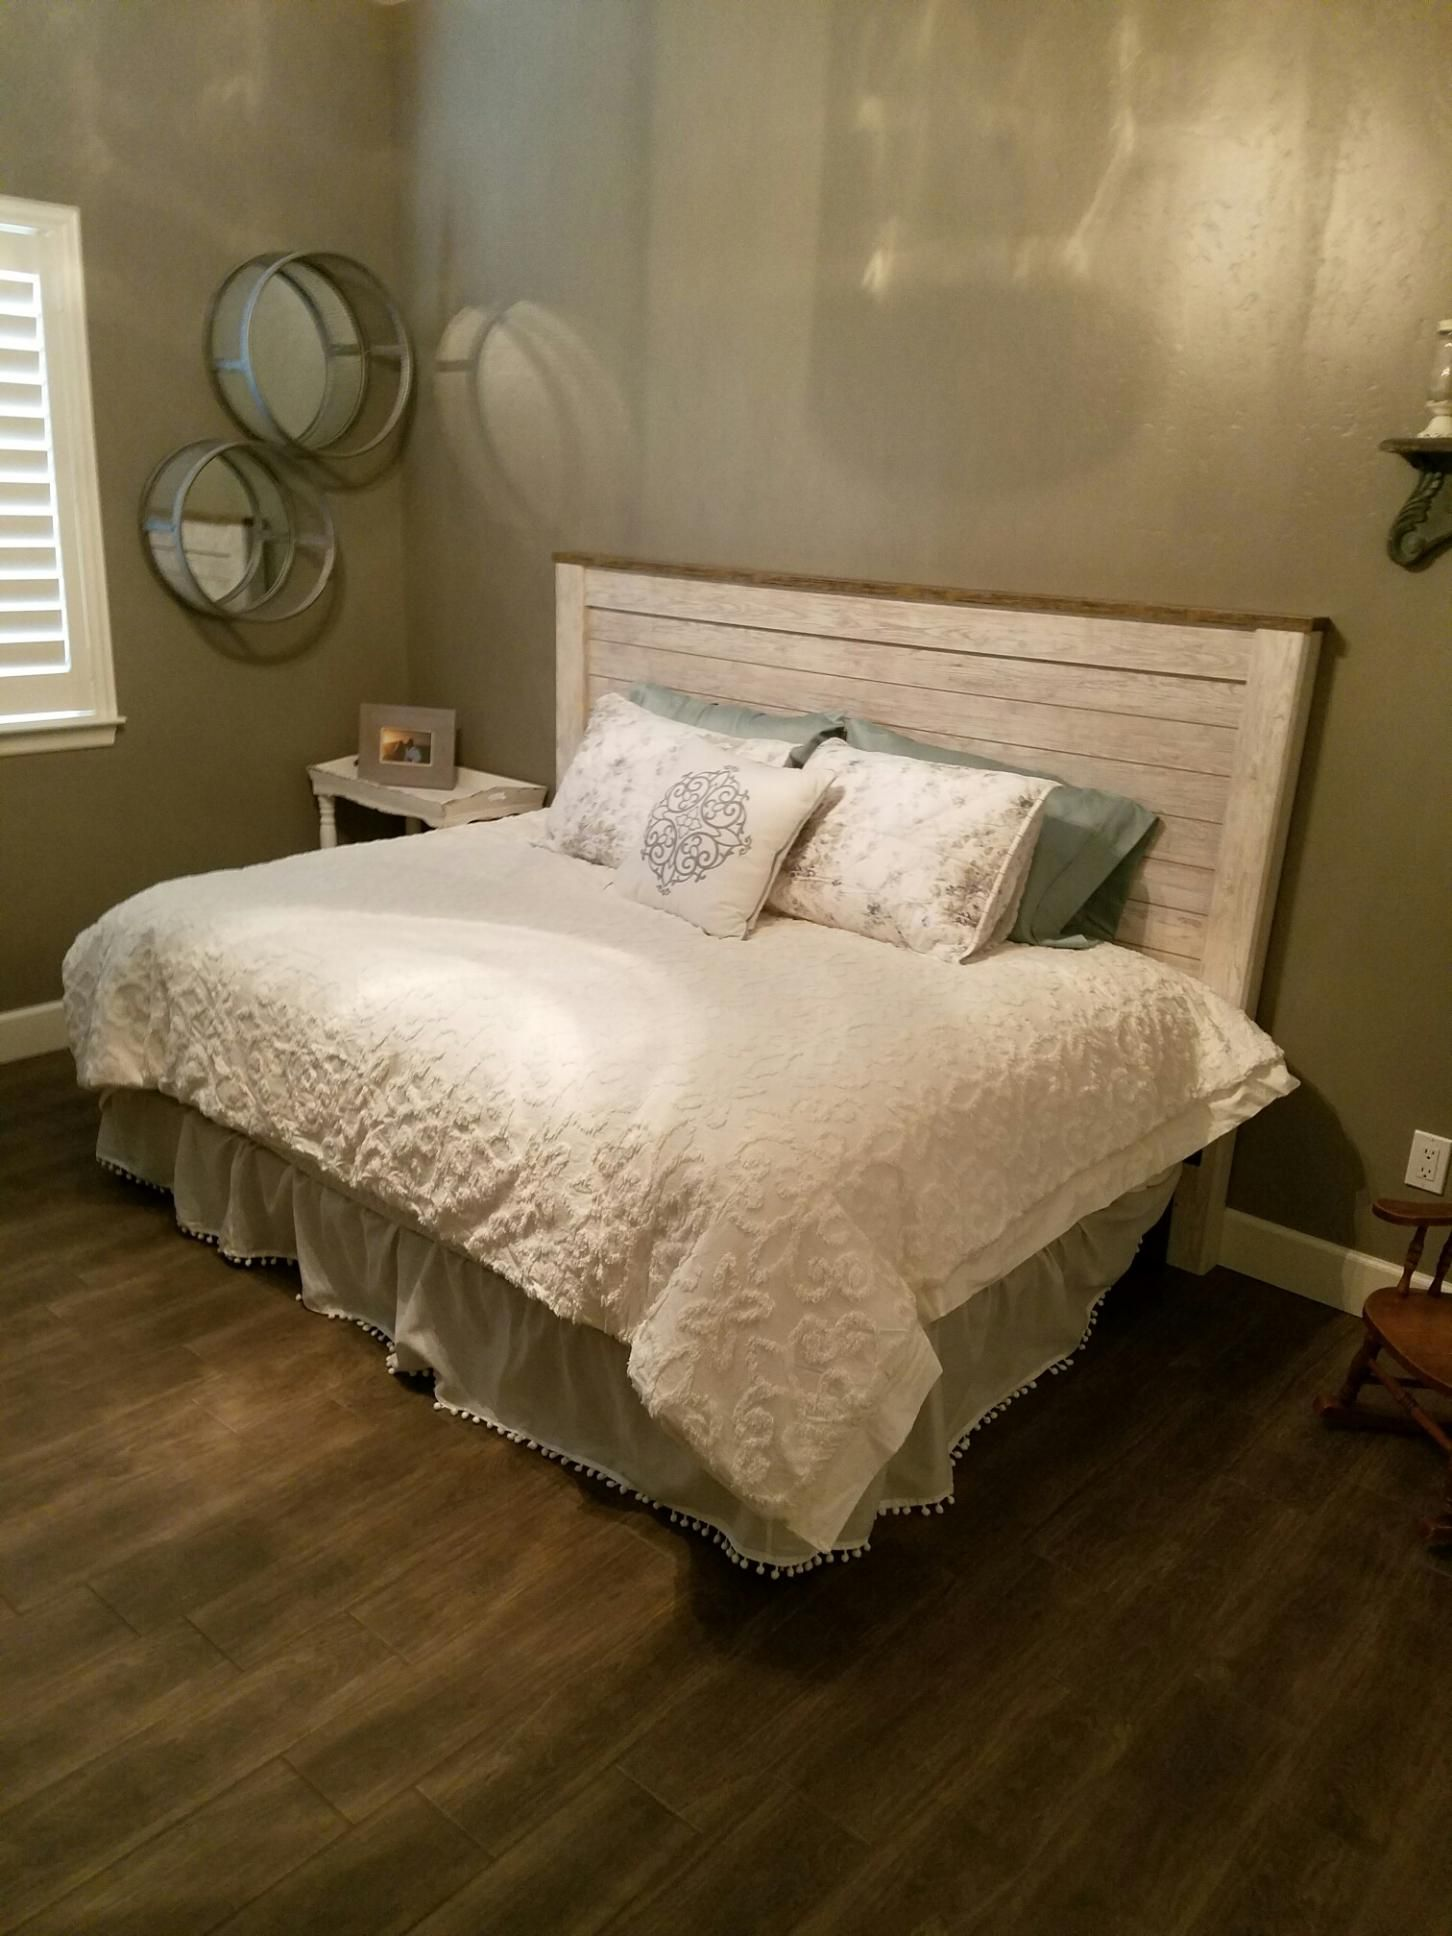 King Size Headboard With Full Size Mattress Love My New Guest